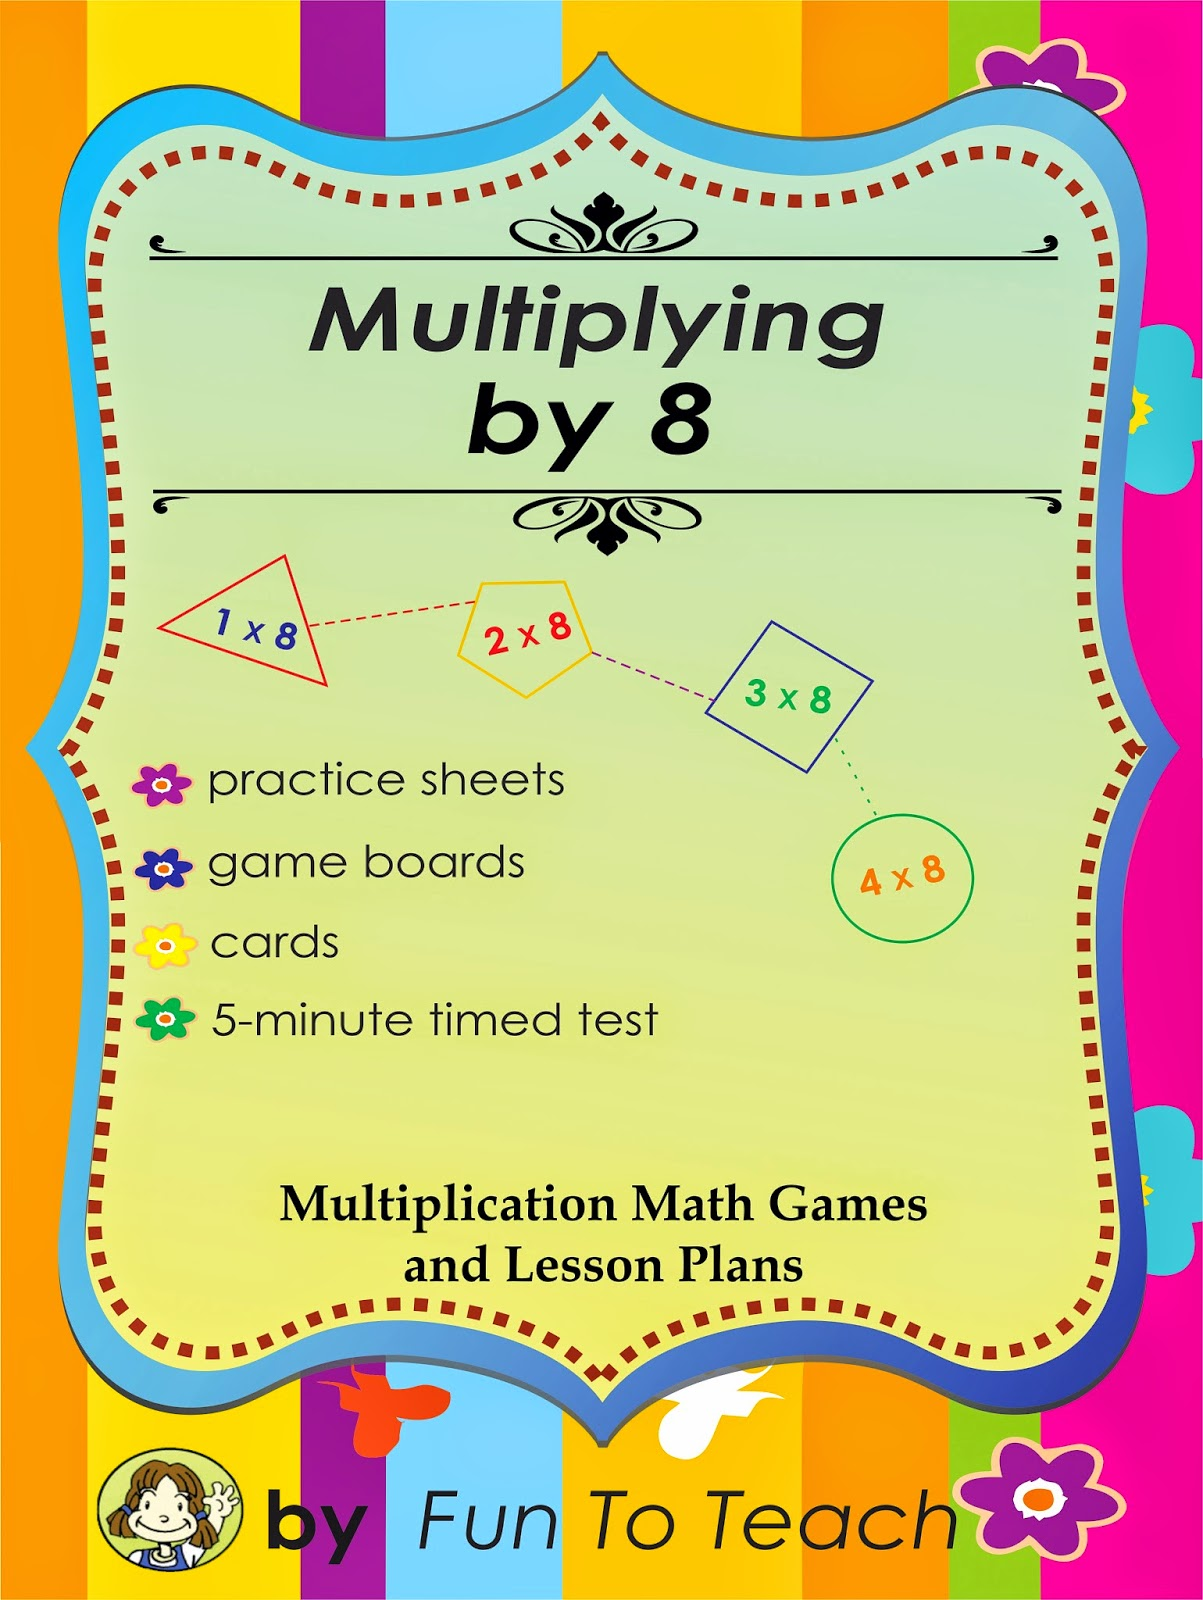 http://www.teacherspayteachers.com/Product/Multiplying-by-8-Math-Games-and-Lesson-Plan-28642